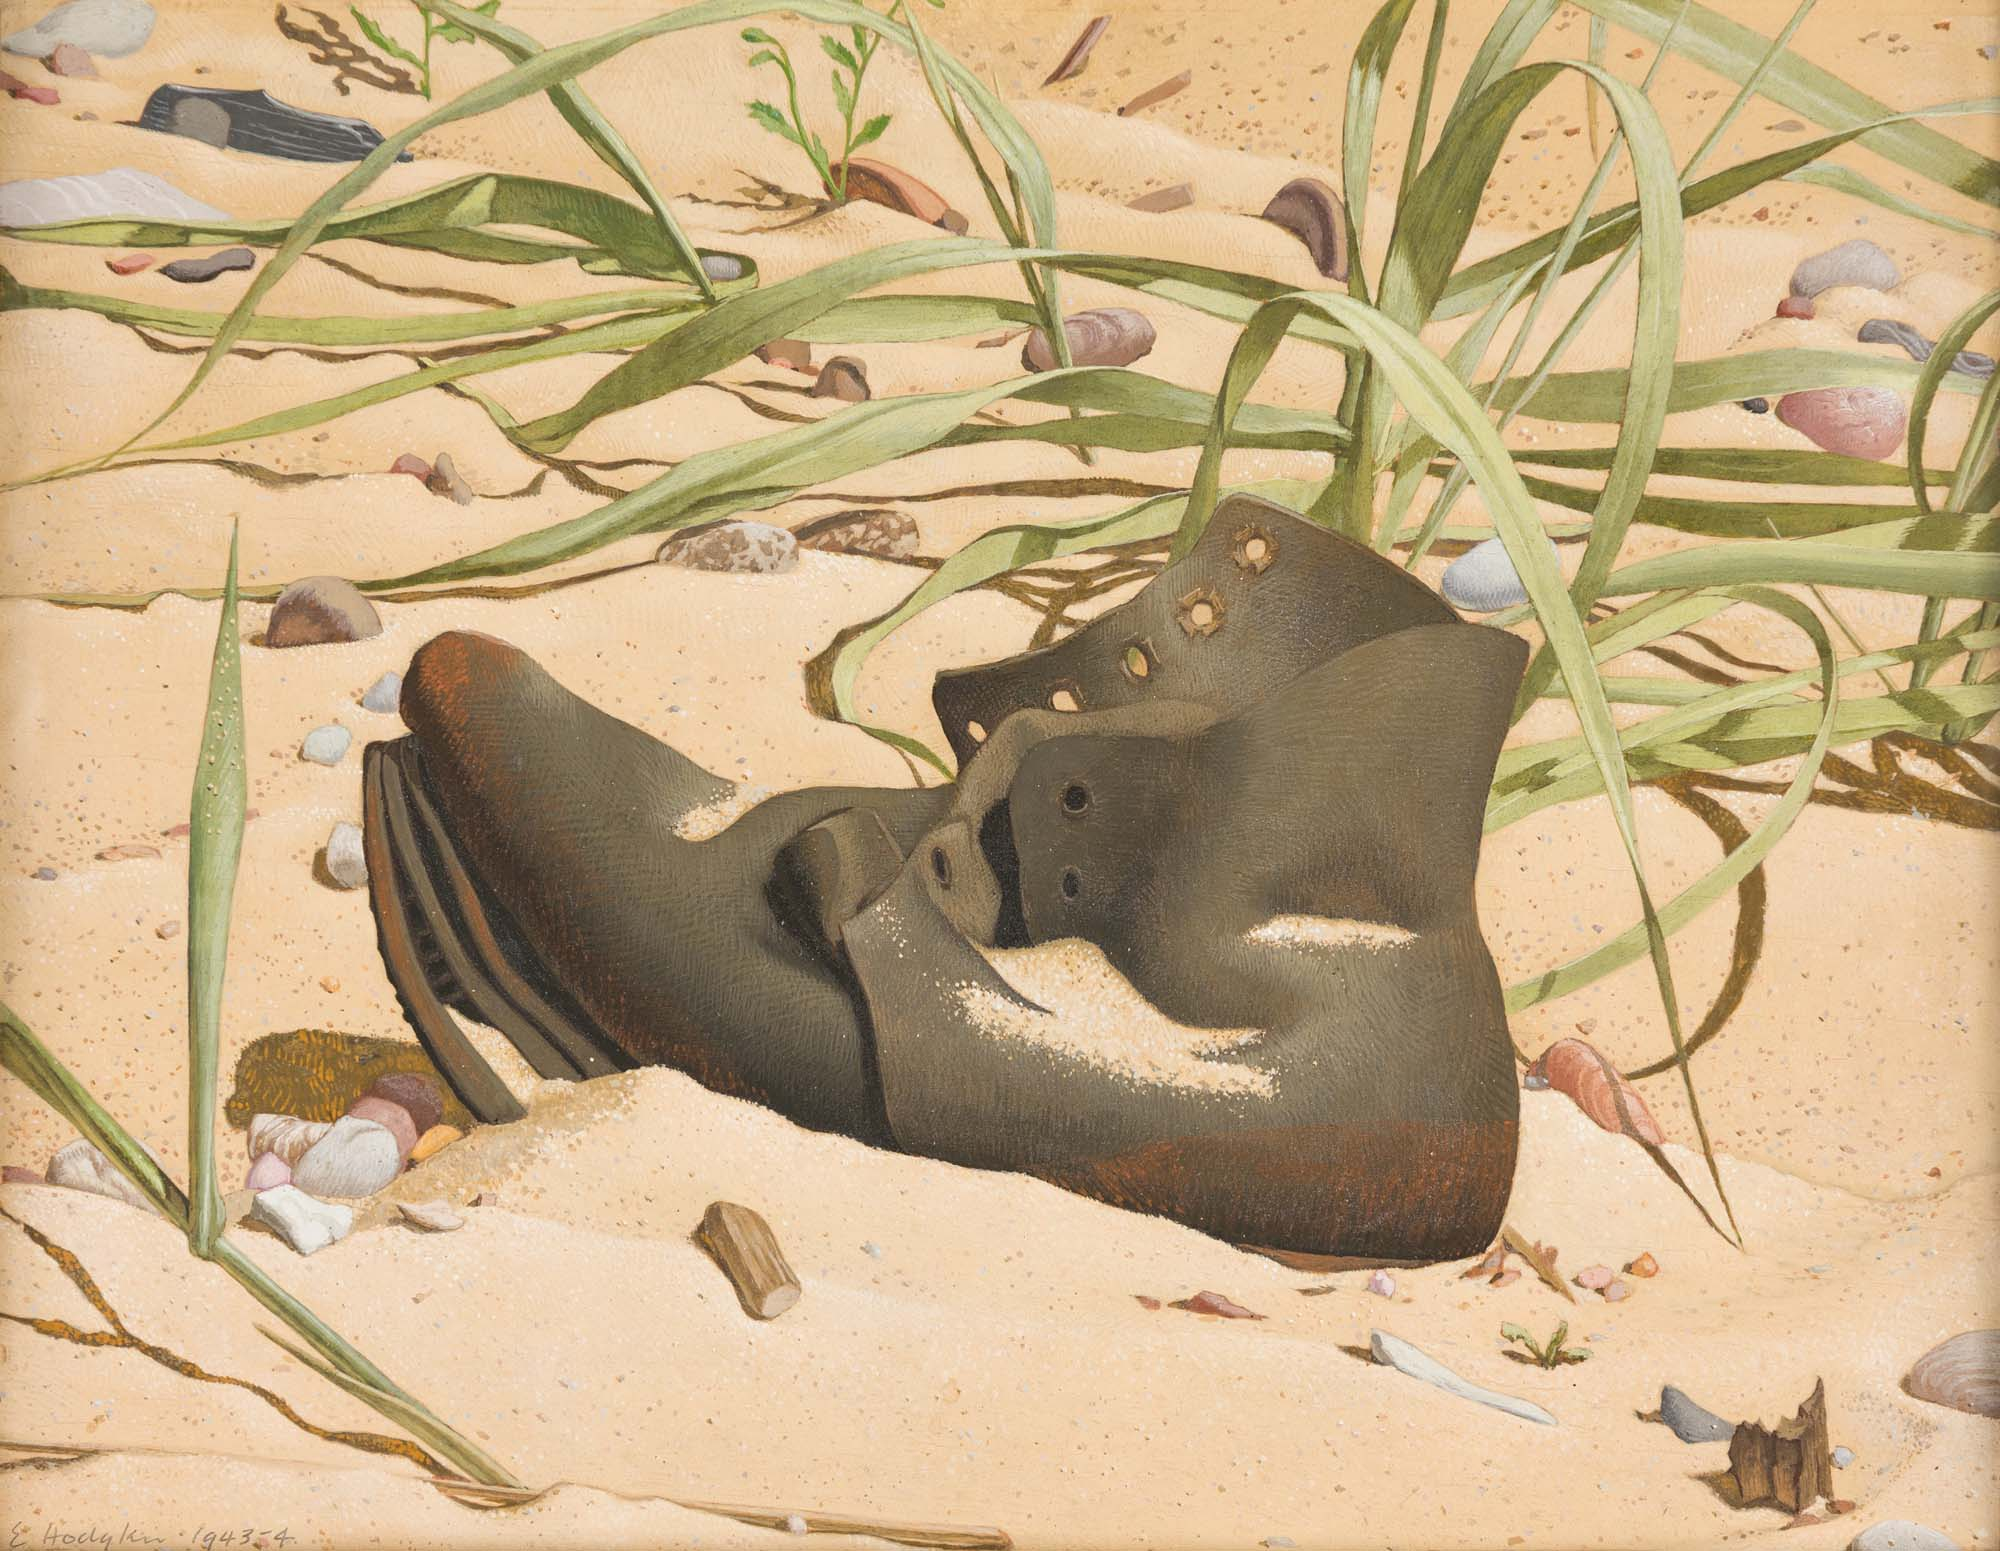 a still life painting of a worn old leather boot on a beach